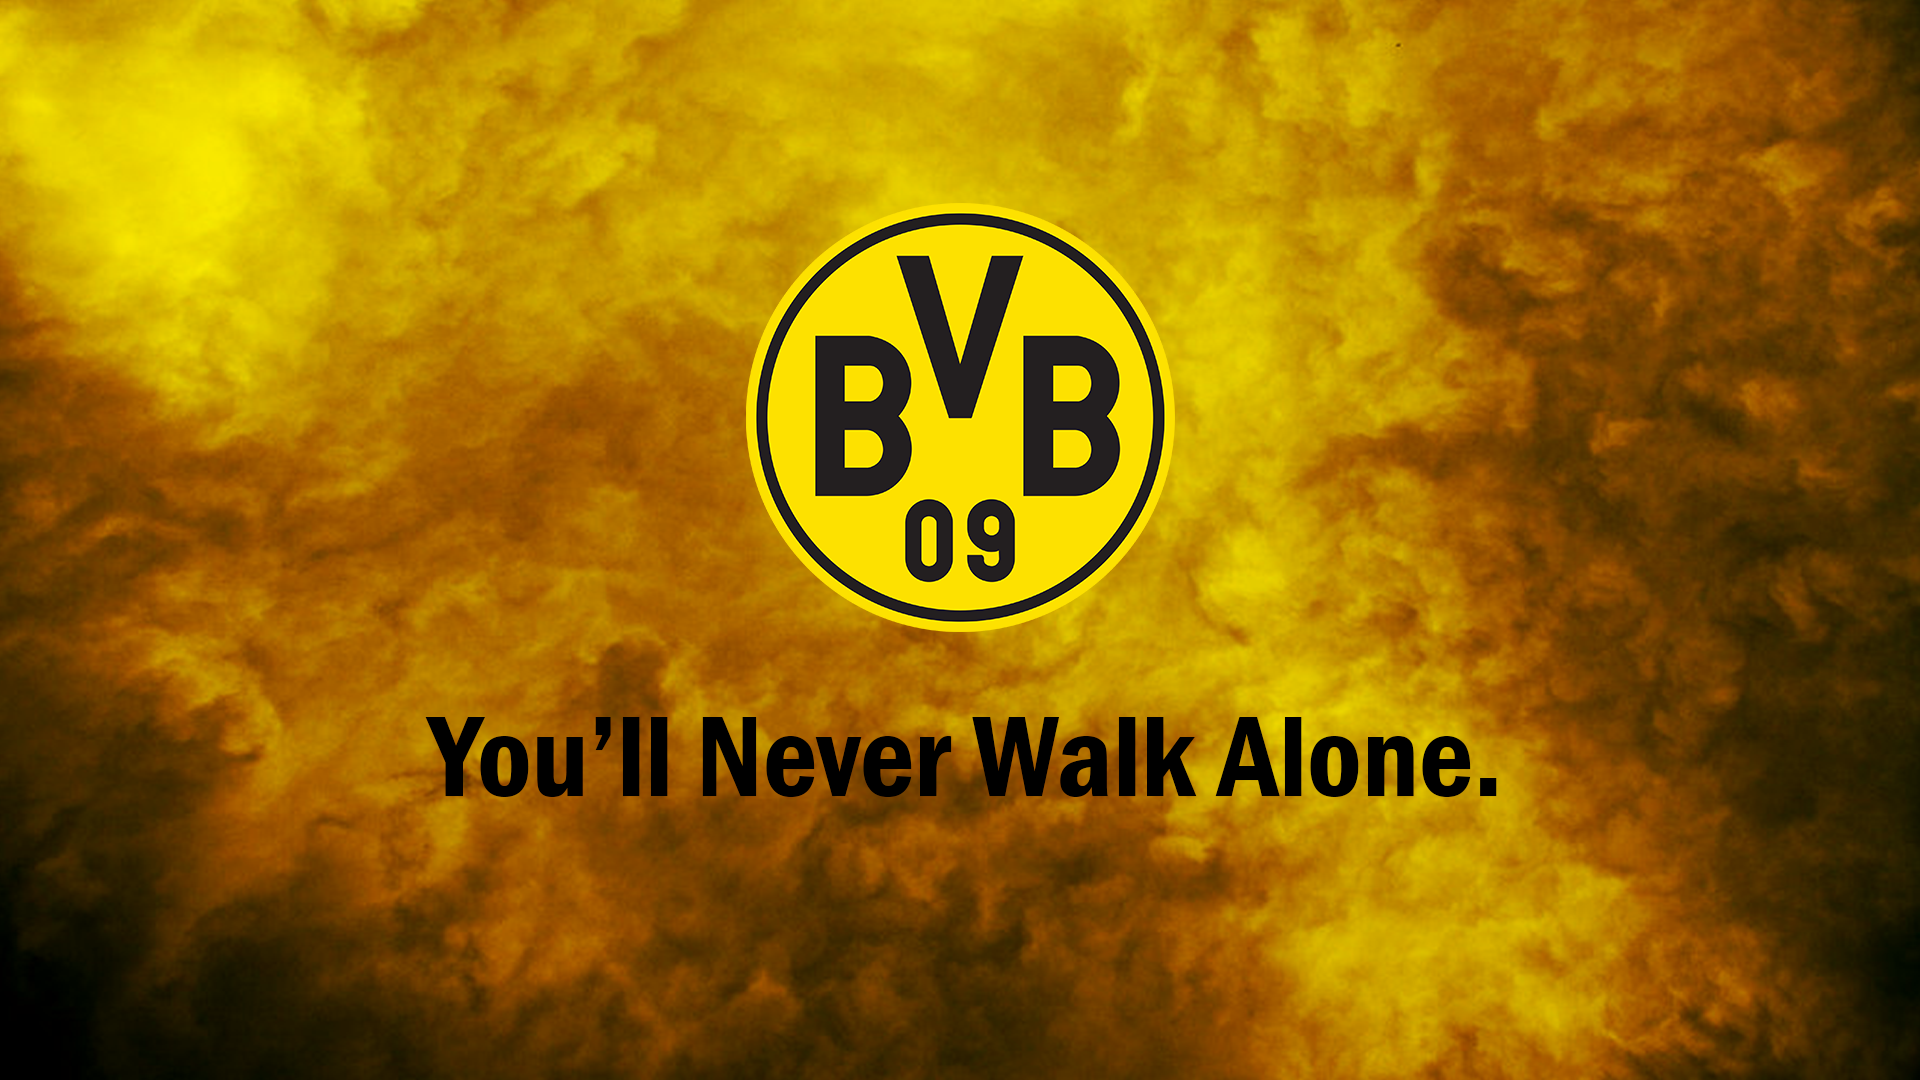 Borussia Dortmund BVB Youll Never Walk Alone by DirtyC0re 1920x1080